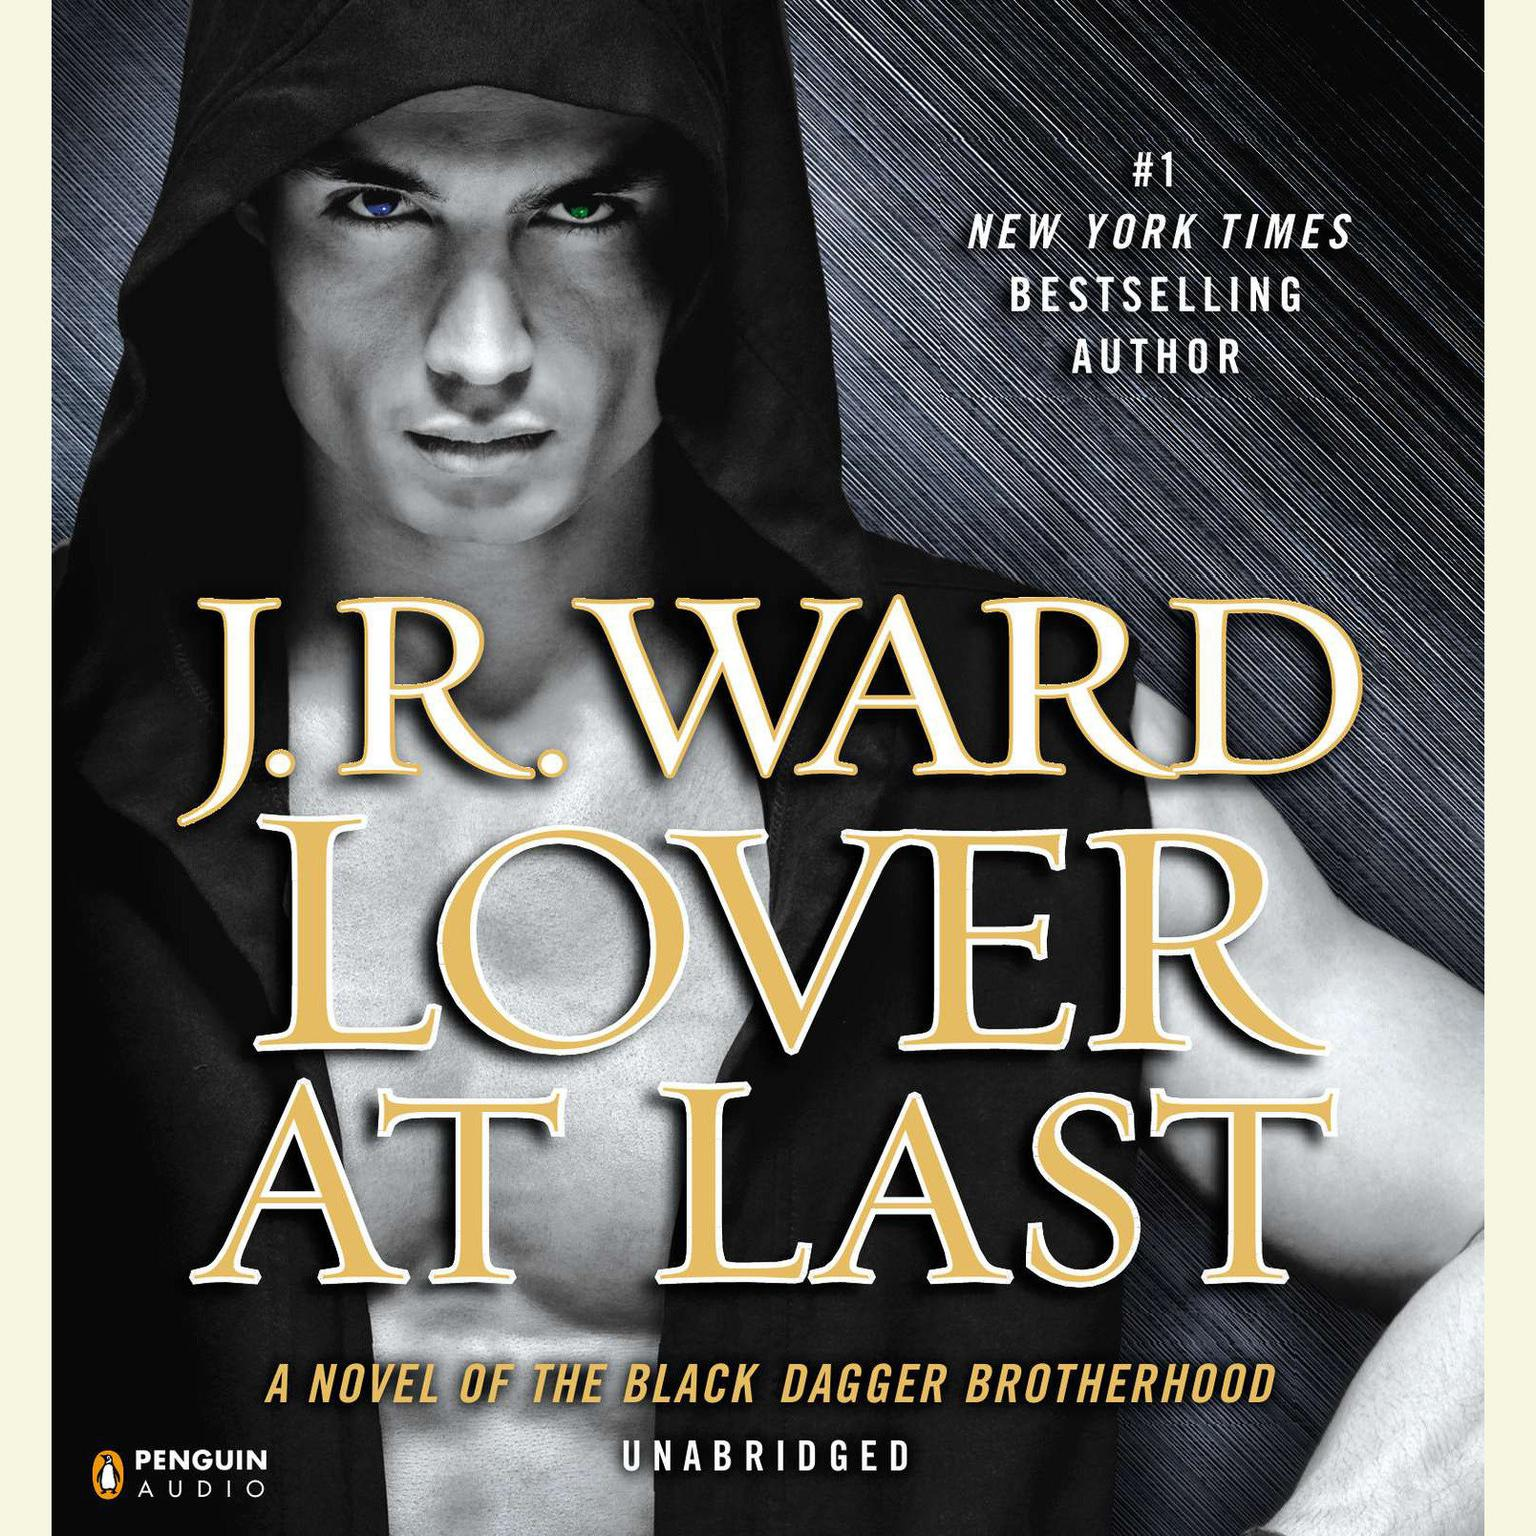 Printable Lover at Last: A Novel of the Black Dagger Brotherhood Audiobook Cover Art